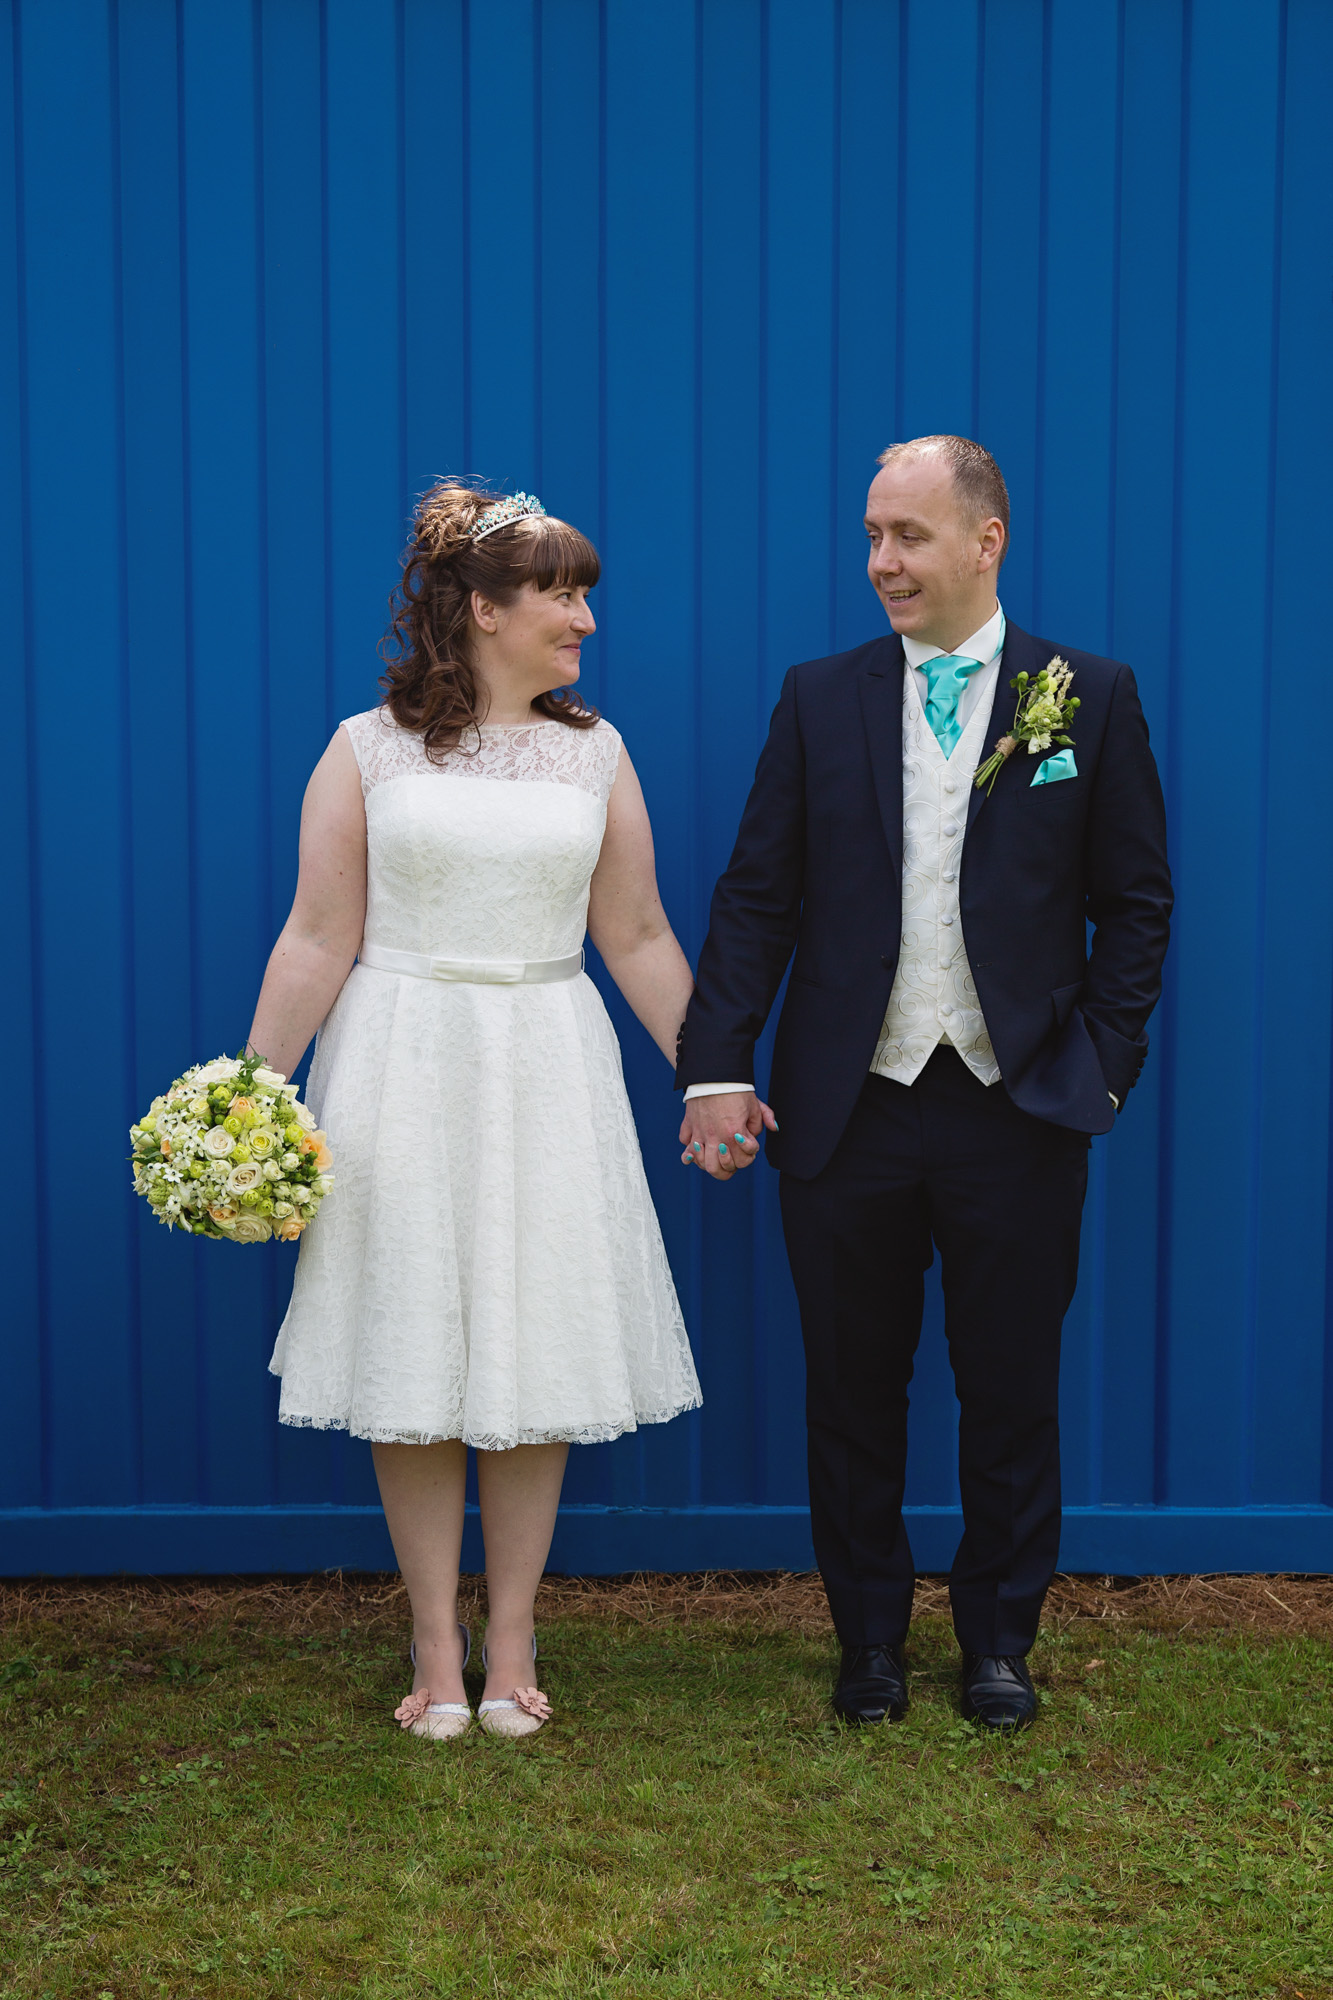 wedding photographer newbridge, caerphilly, cardiff